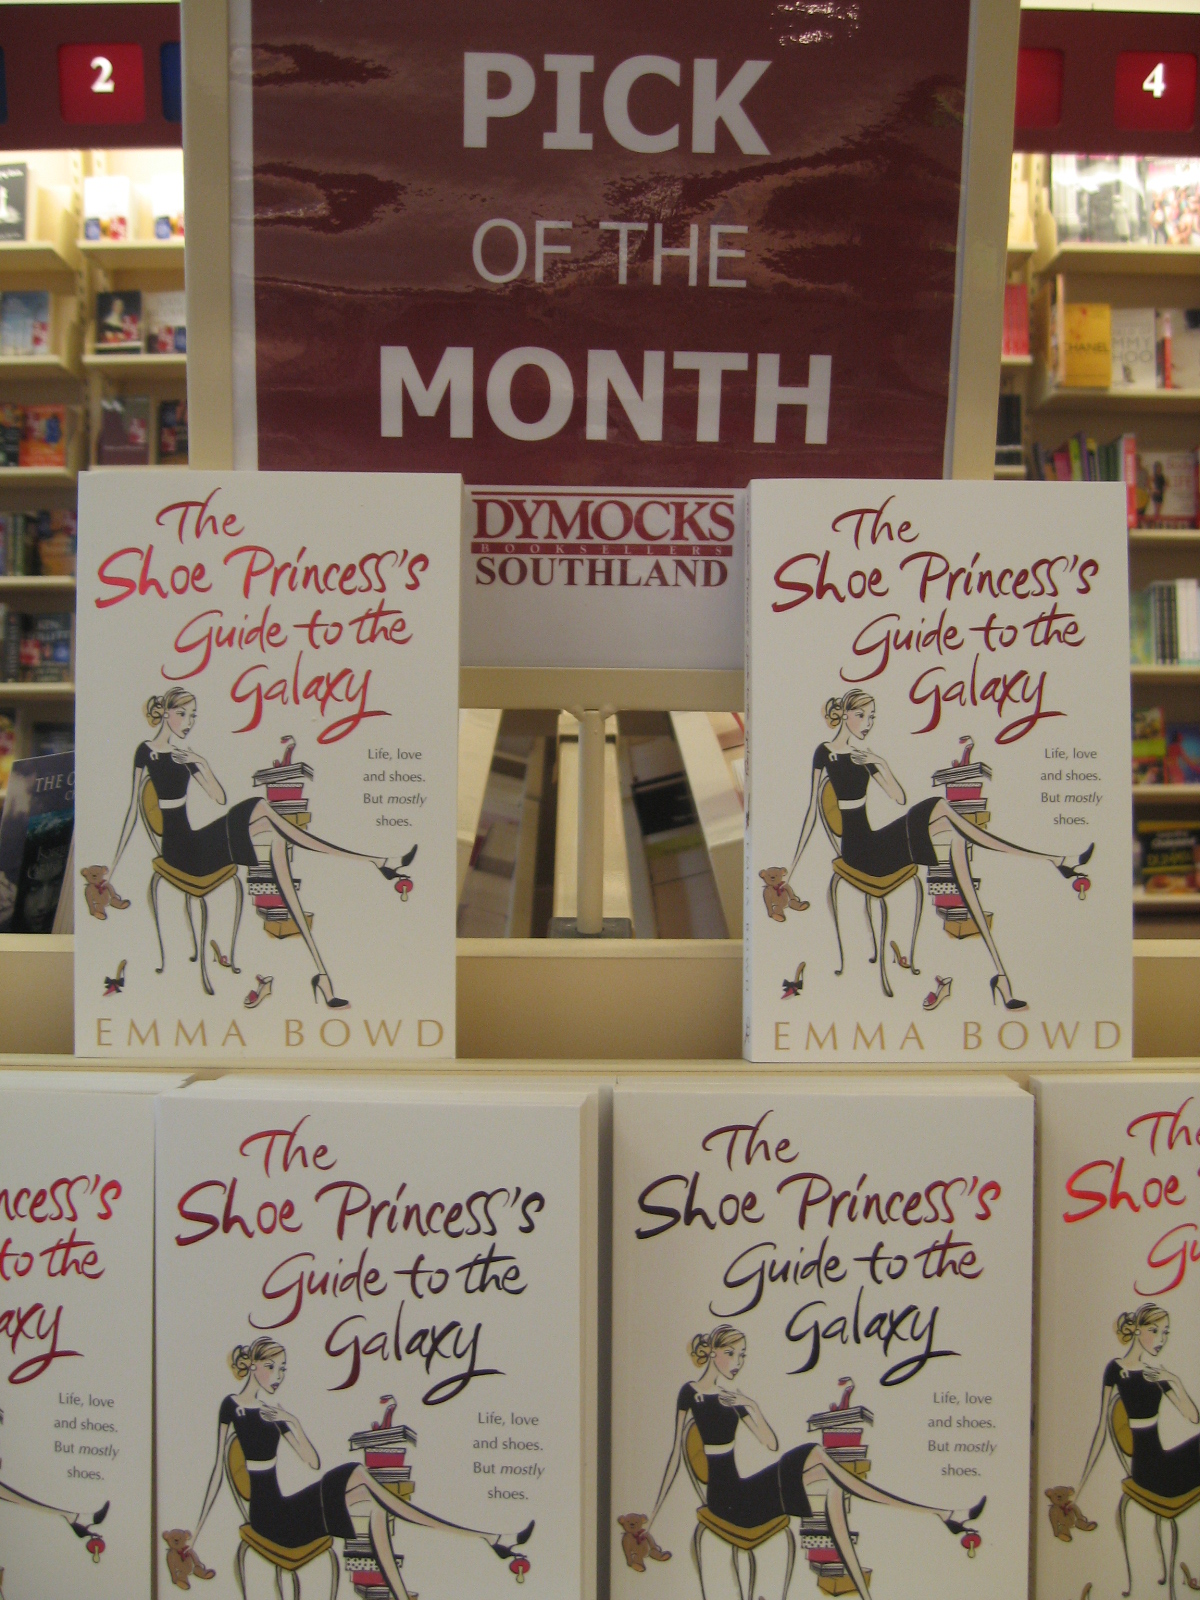 Dymocks Southland (Westfield) Pick of the Month 1 - Shoe Princess